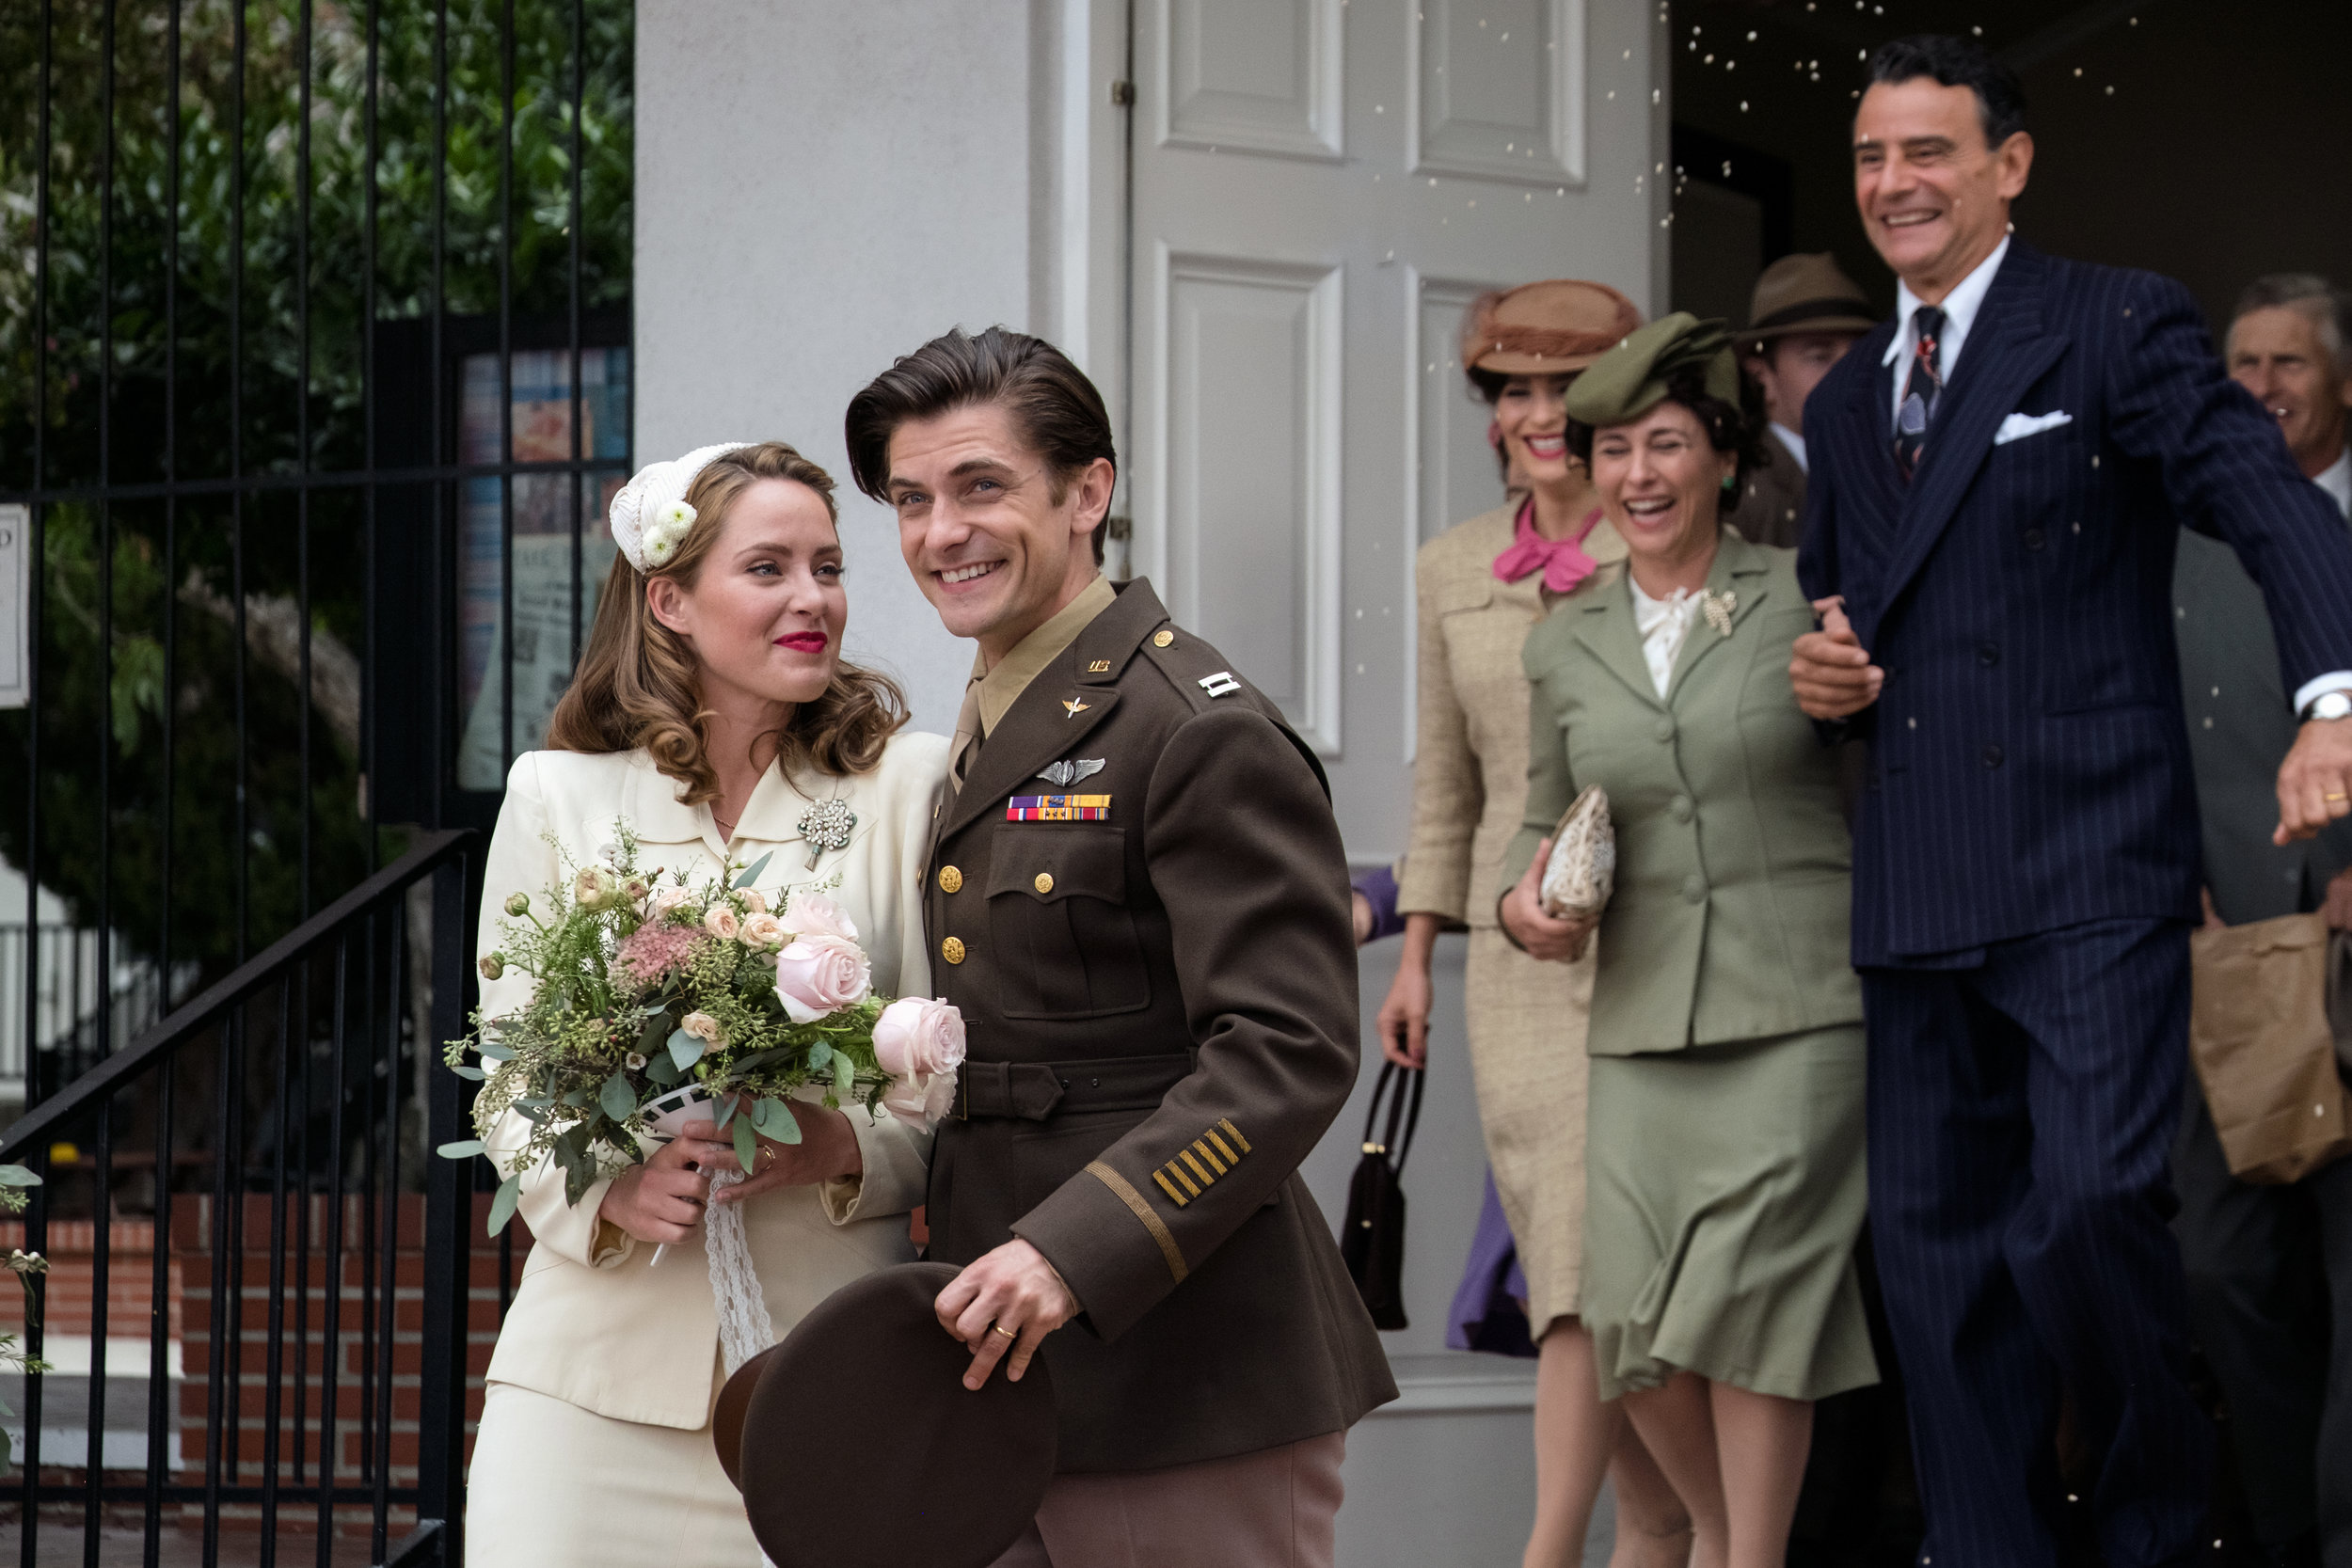 """Louis Zamperini (Samuel Hunt), former track star and POW, marries Cynthia Applewhite (Merritt Patterson), in a scene from the drama """"Unbroken: Path to Redemption."""" (Photo courtesy WTA Group / Universal 1440 Entertainment)"""